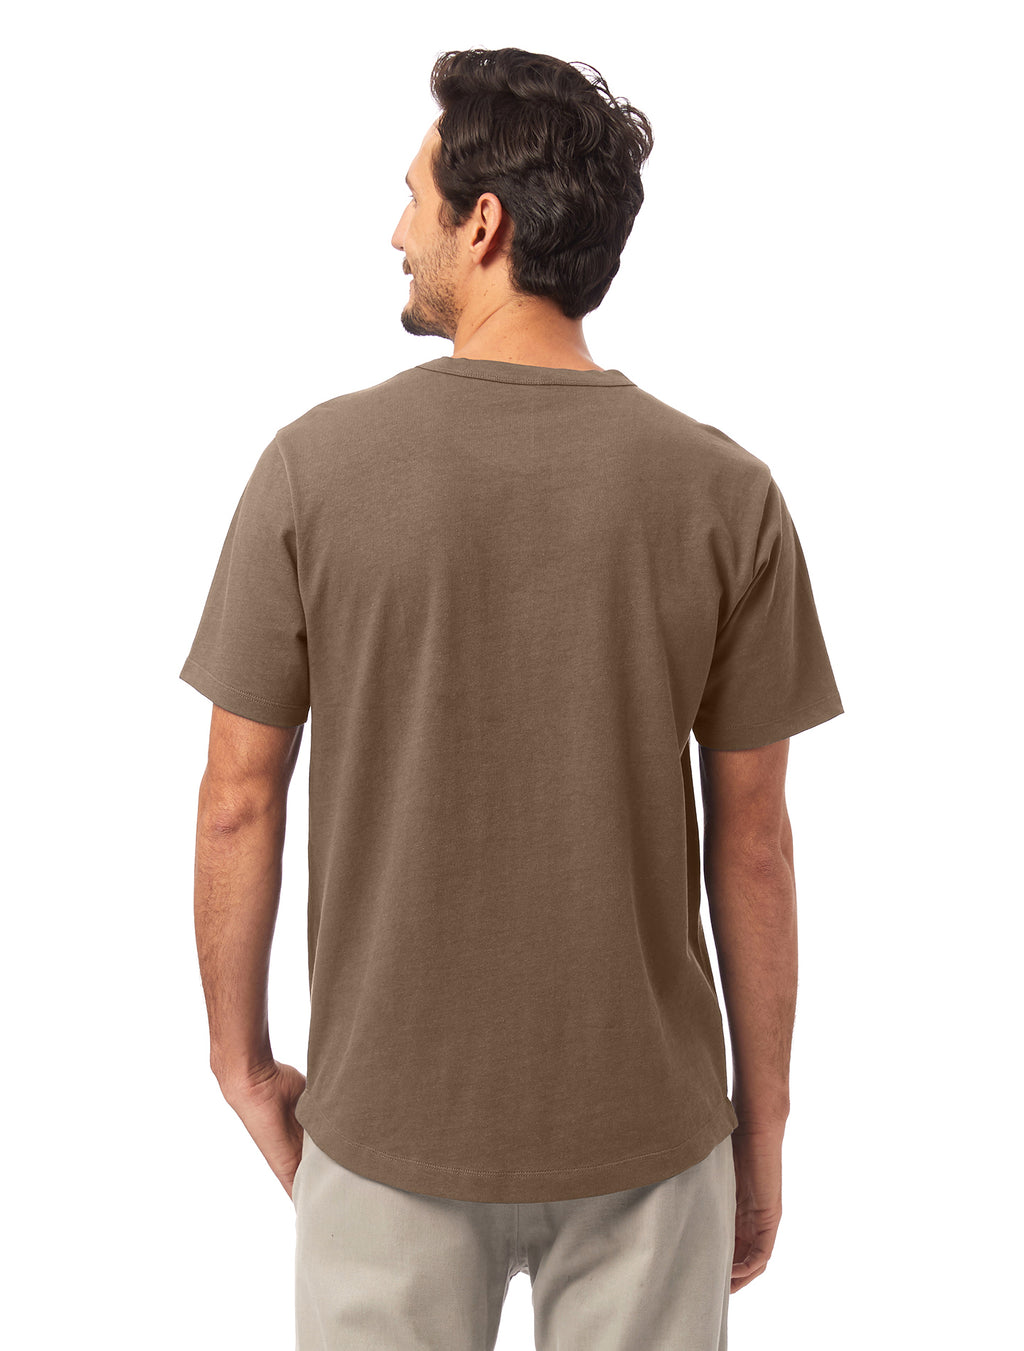 Alternative Apparel Hemp Blend T-Shirt- Oak